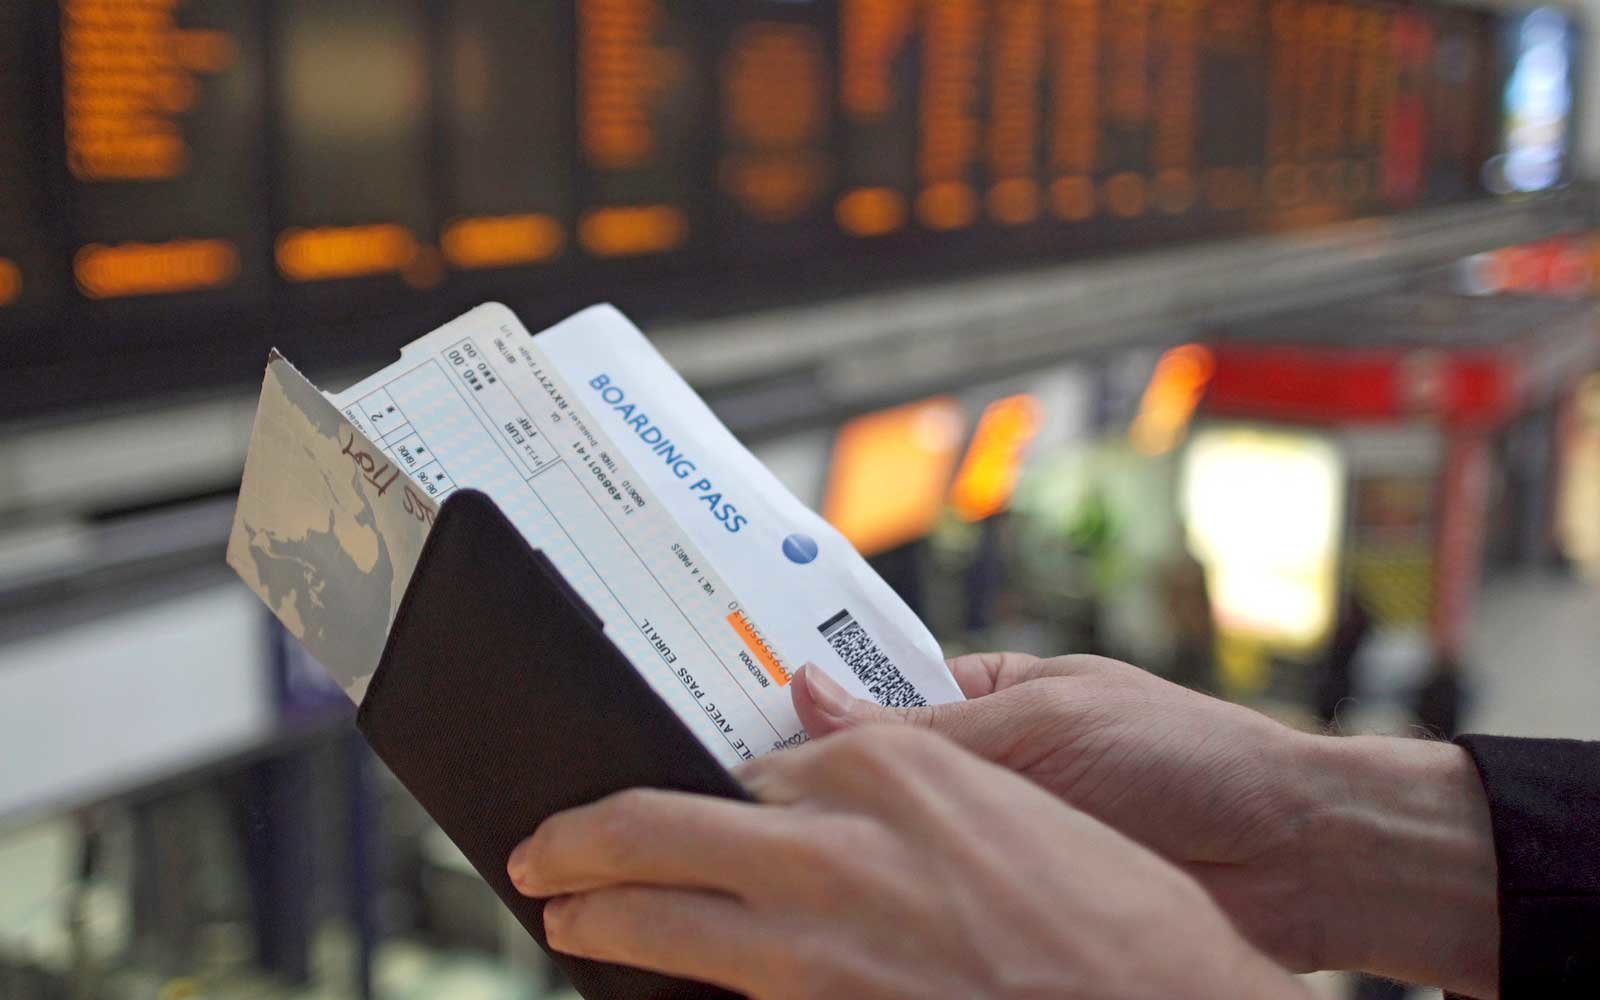 Travel documents and boarding pass